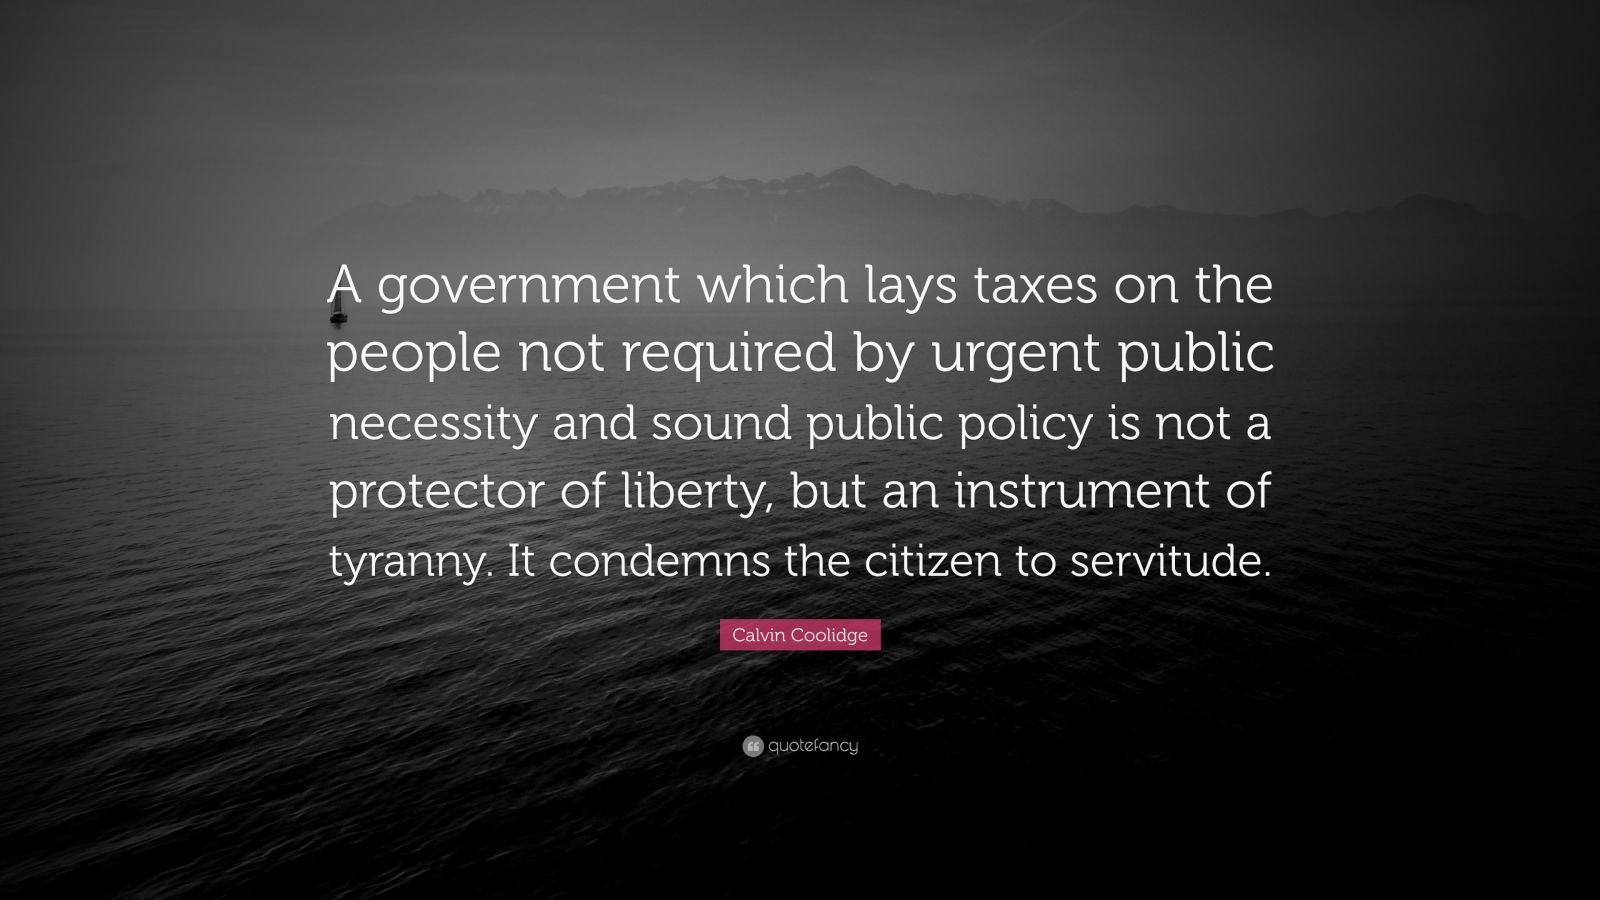 """Calvin Coolidge Quote: """"A government which lays taxes on the people not required by urgent public necessity and sound public policy is not a protector of liberty, but an instrument of tyranny. It condemns the citizen to servitude."""""""